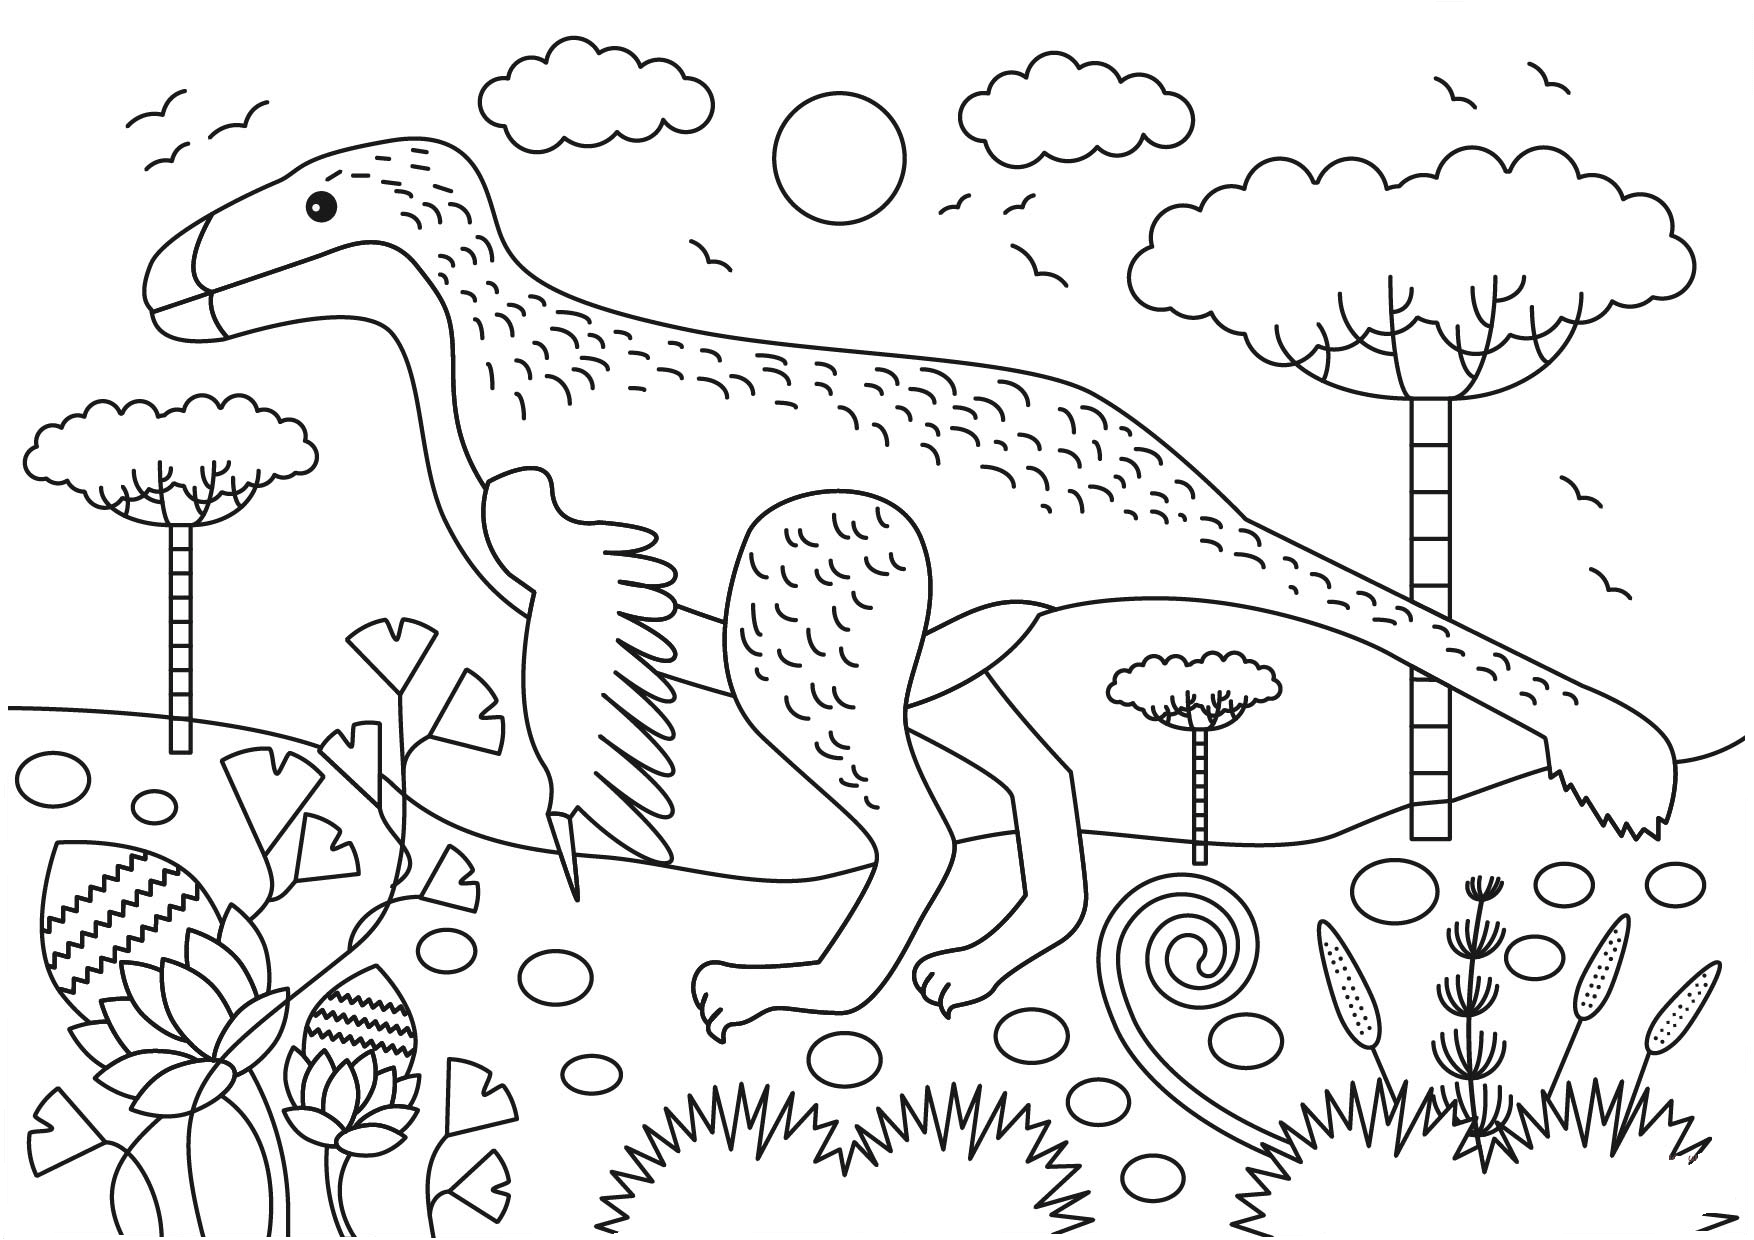 dinosaur print out coloring pages dinosaur print out coloring pages out coloring pages dinosaur print